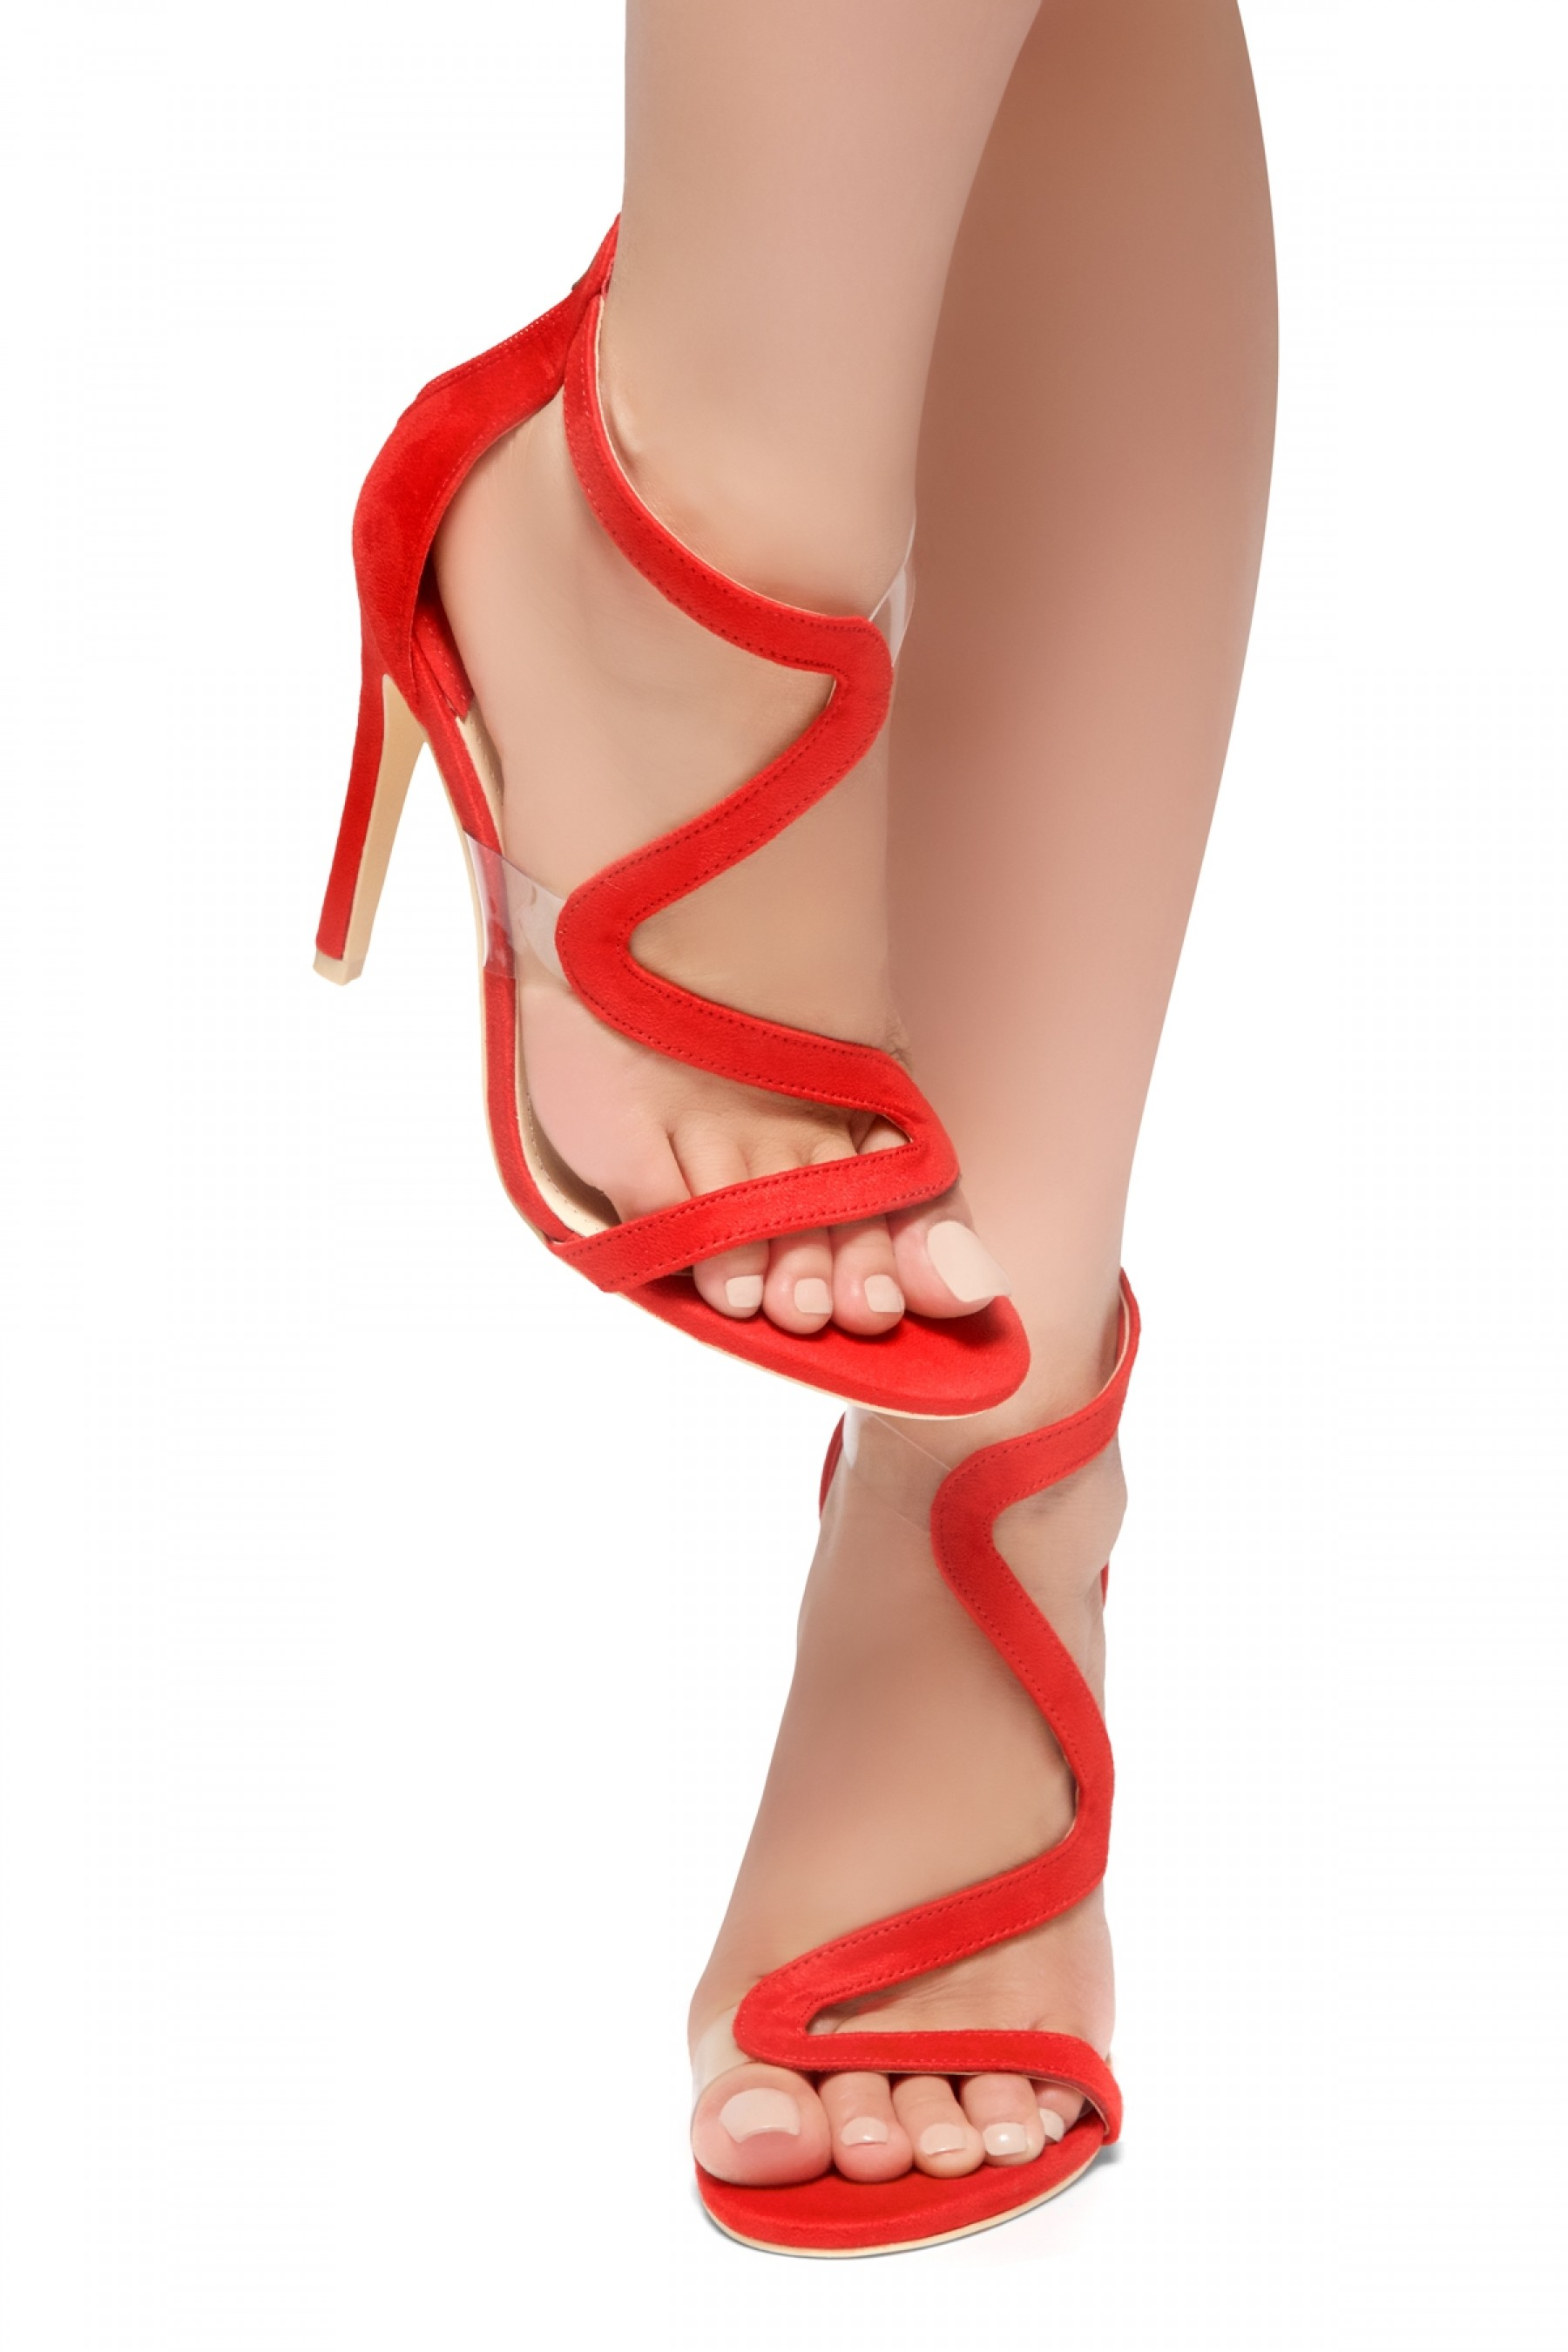 HerStyle GILLS- Curvy Vamp Strap across from Toe to Back Heel (Red)